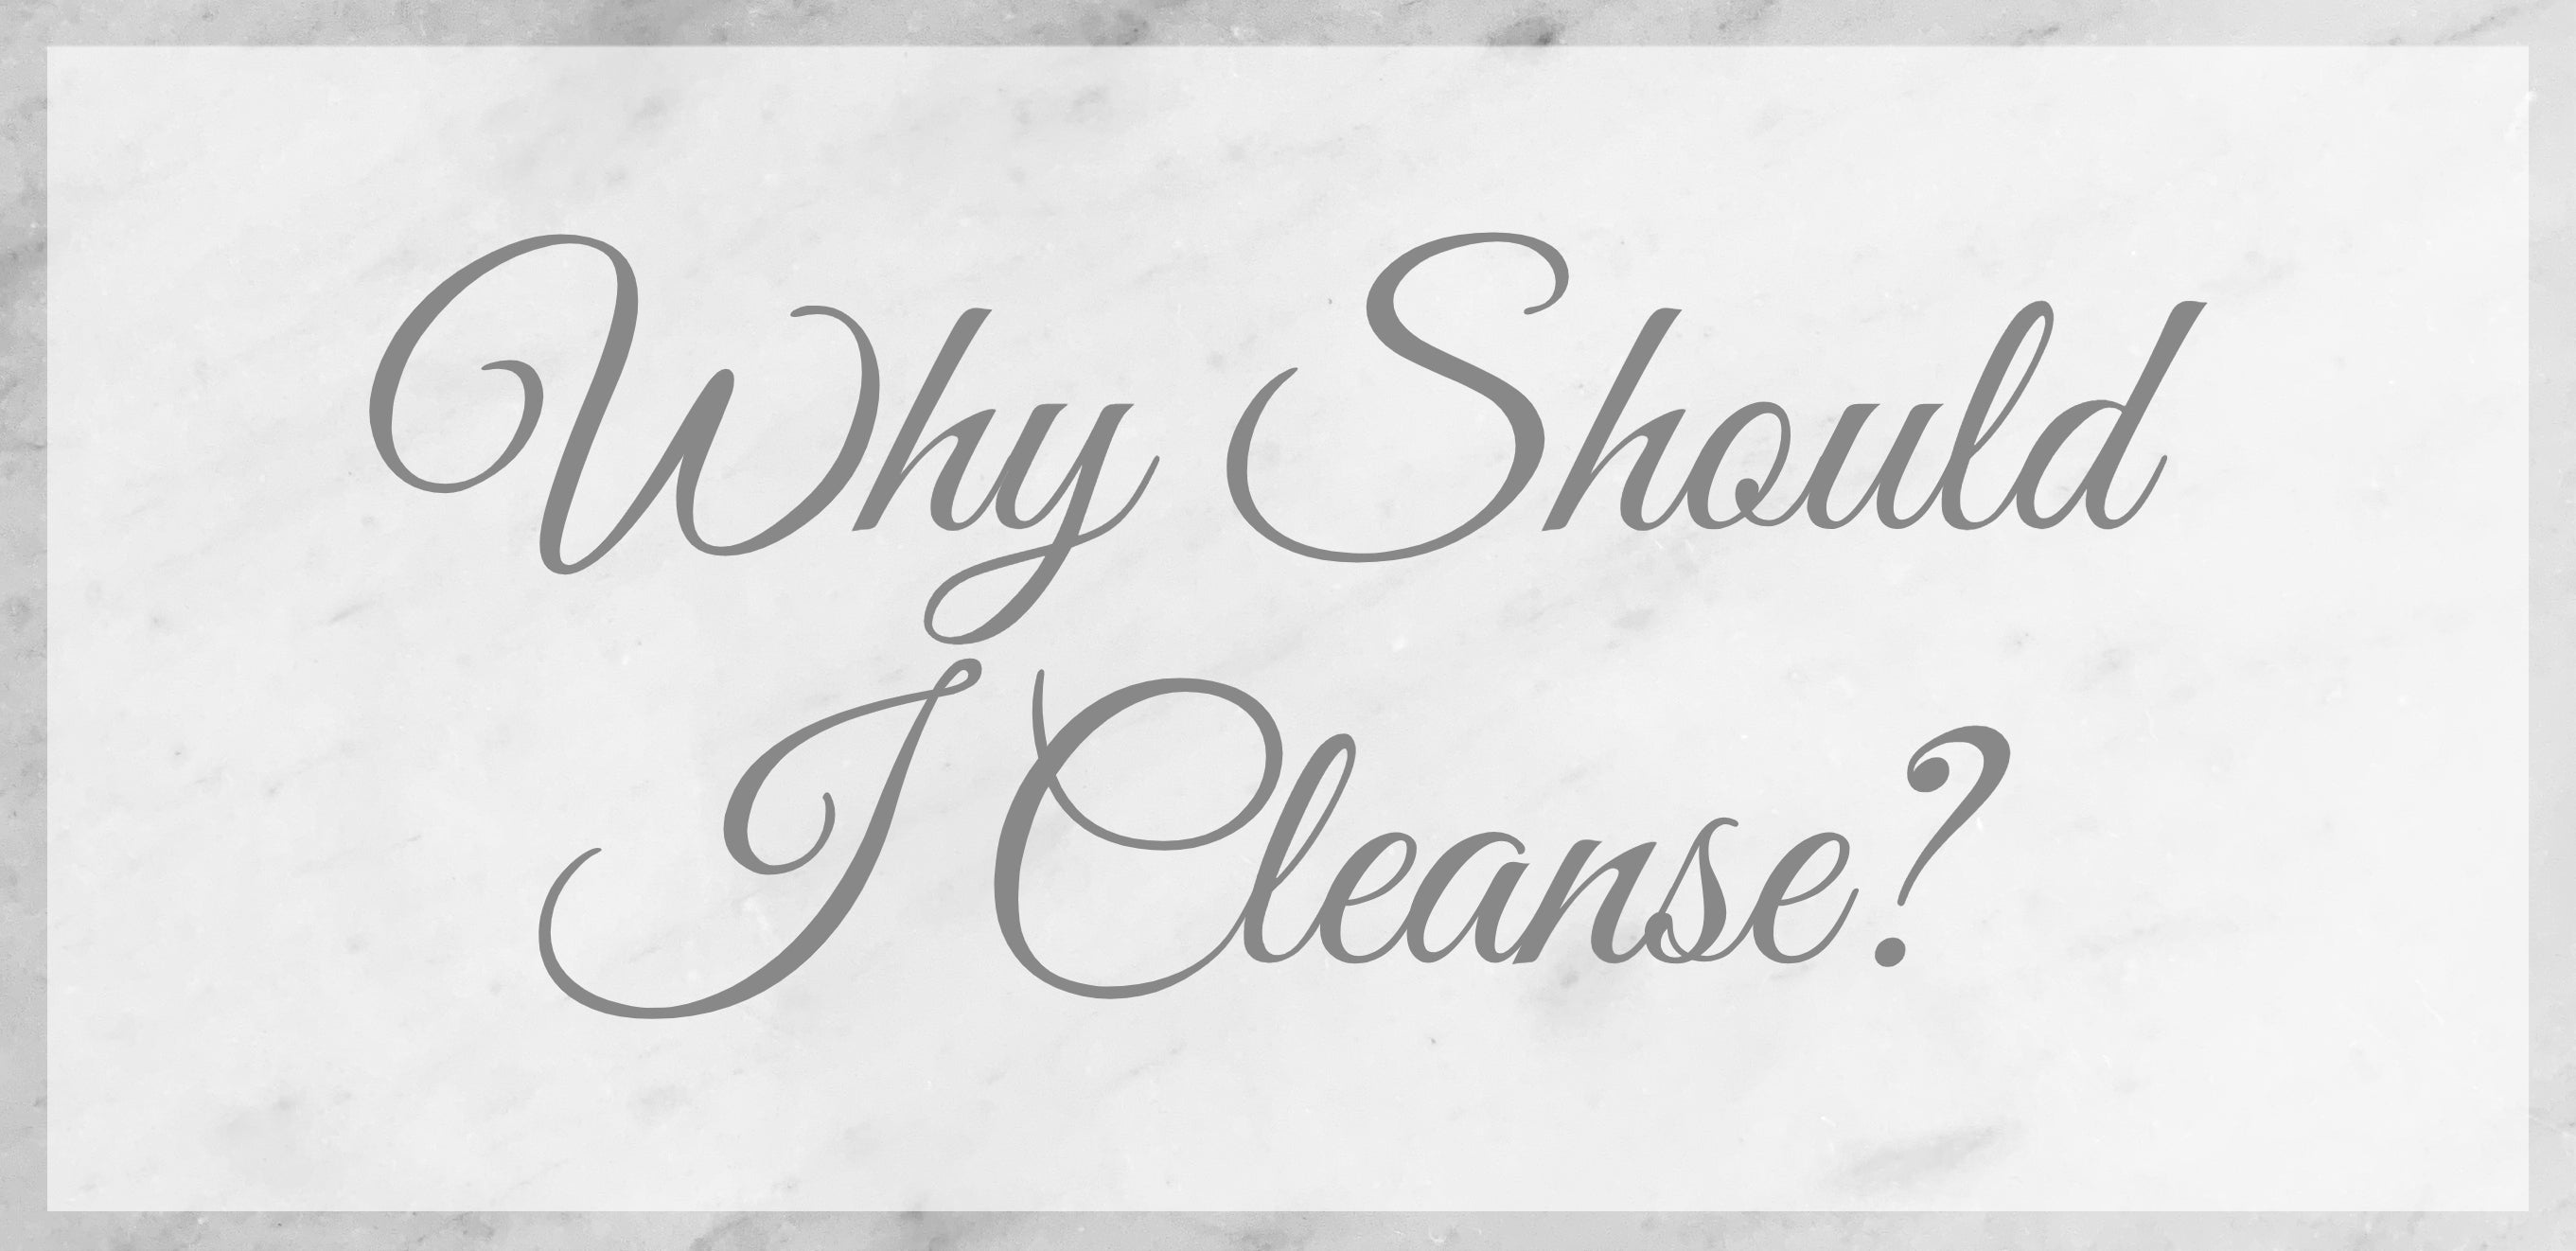 Why Should I Cleanse?